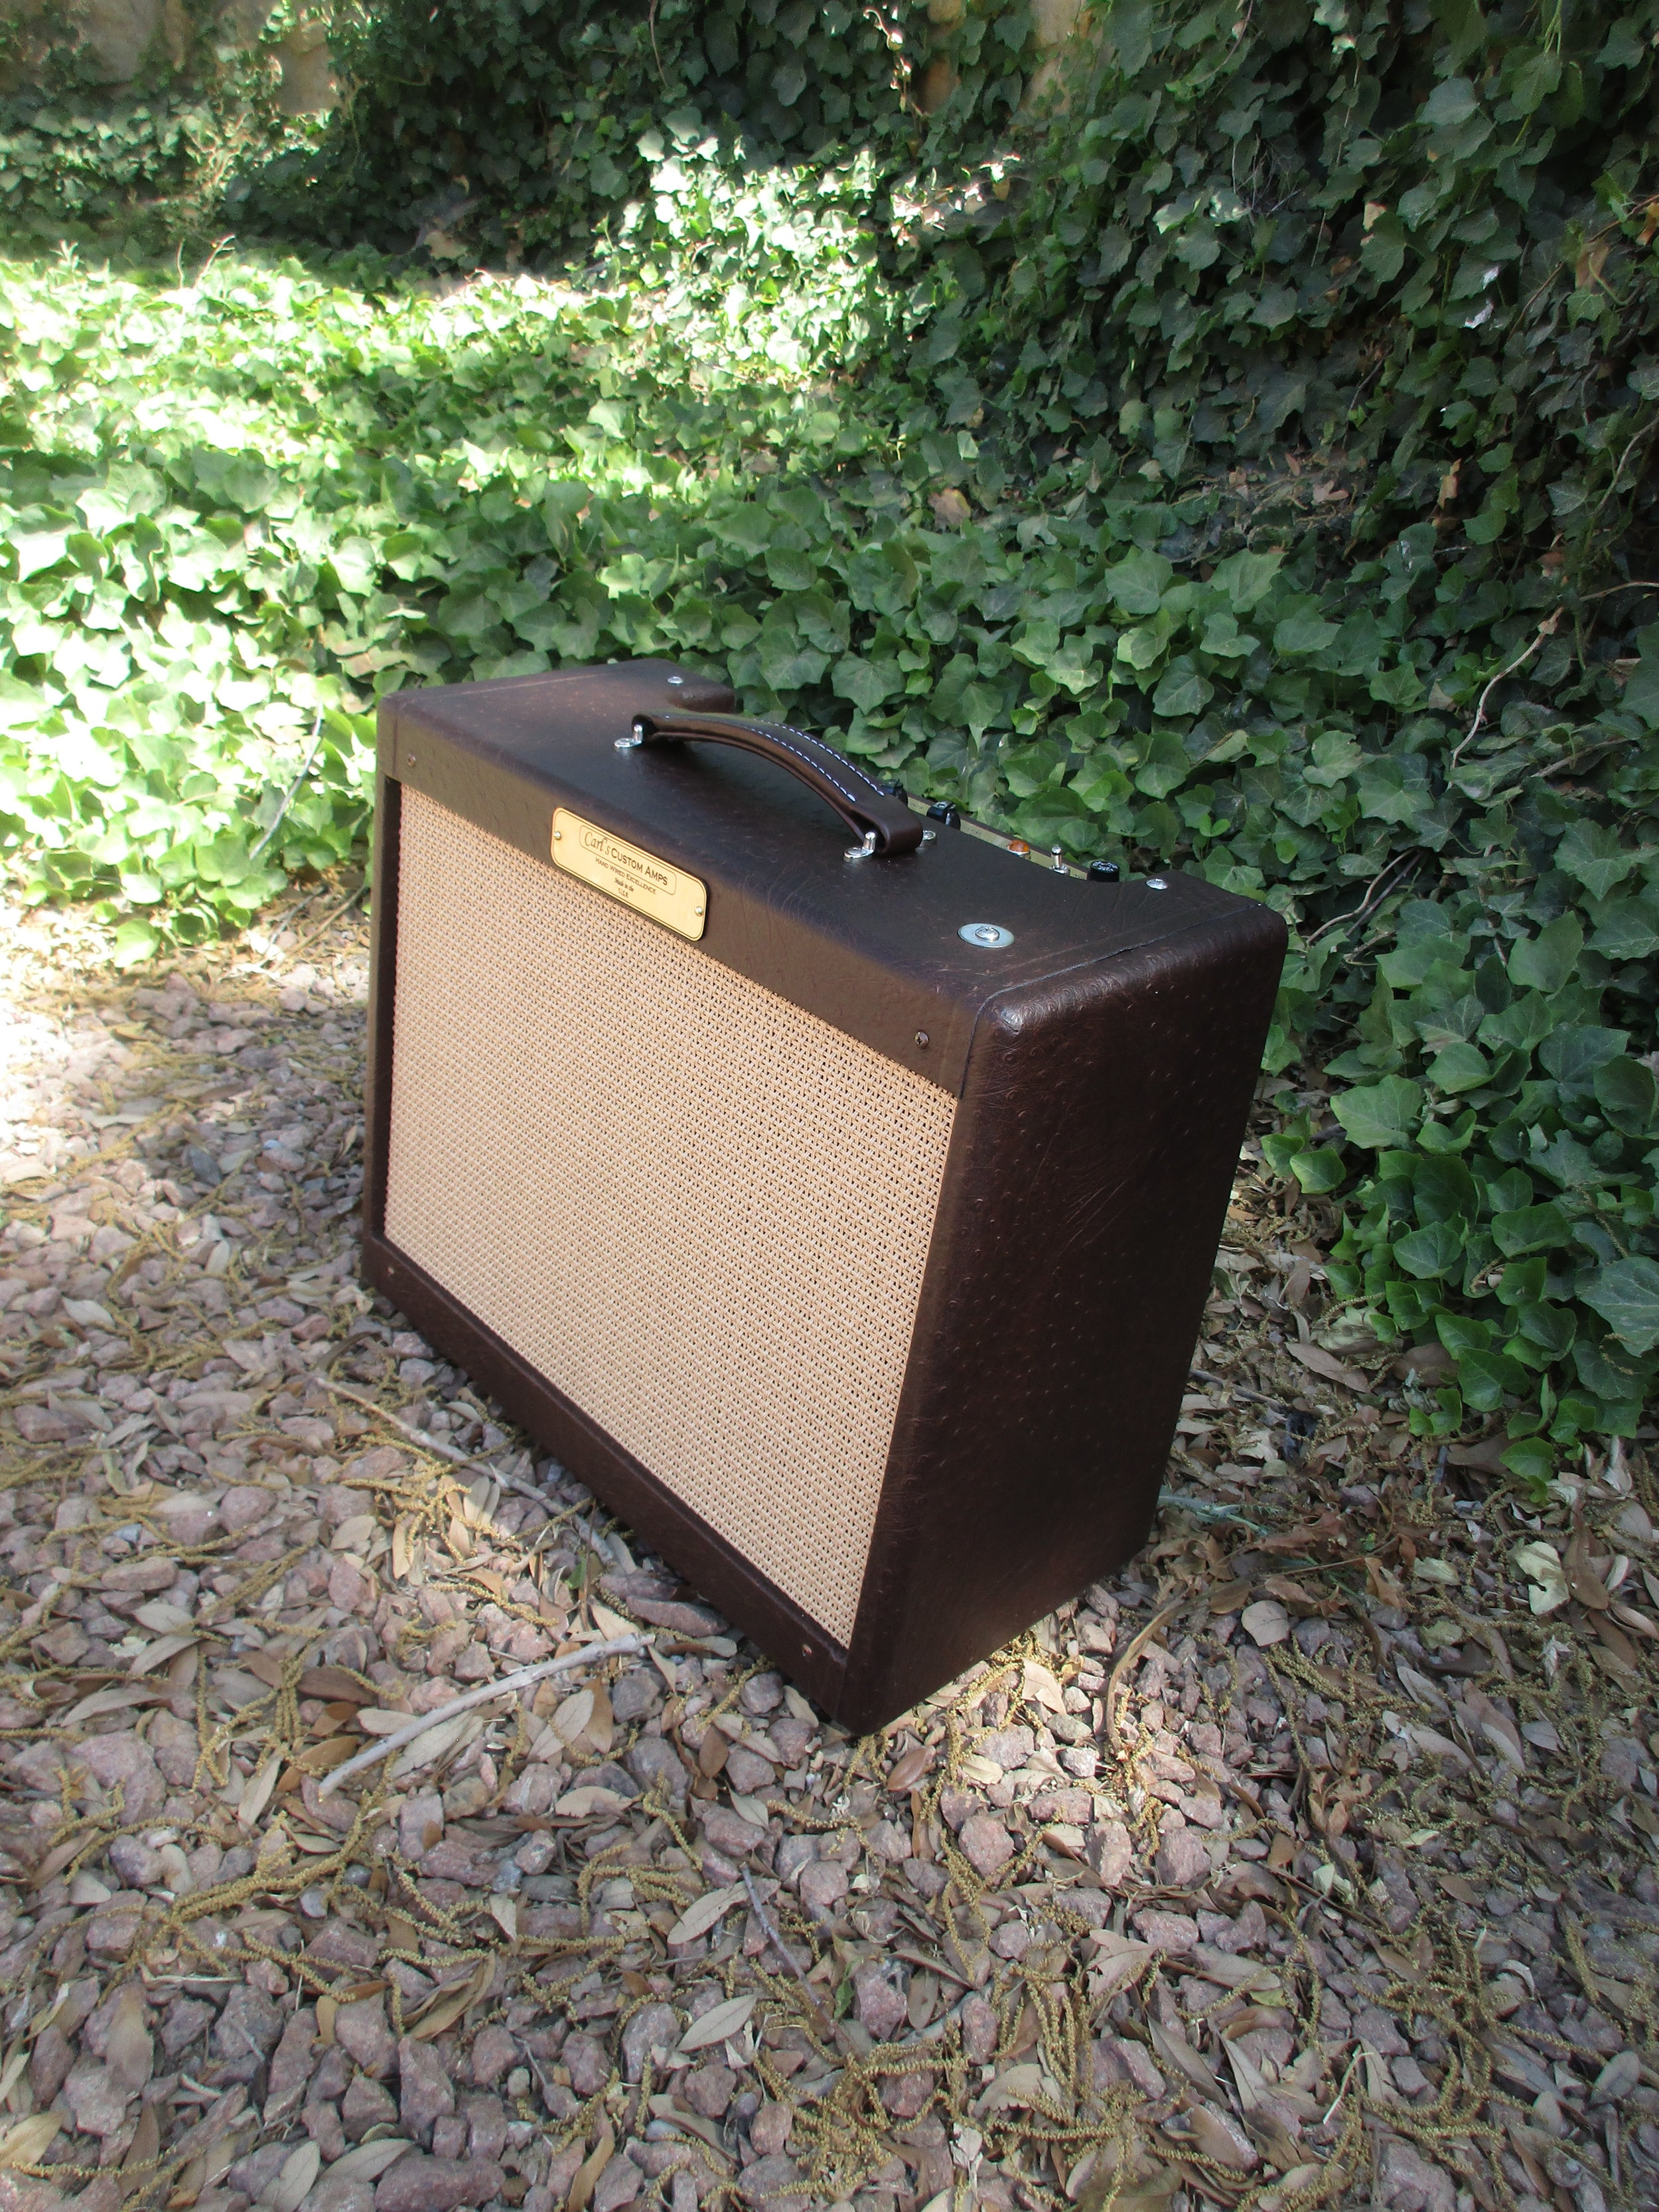 This was awesome build! It's a Tweed Harvard with variable power. Steve Cropper is the most famous Harvard user and this little amp definitely has that tone.